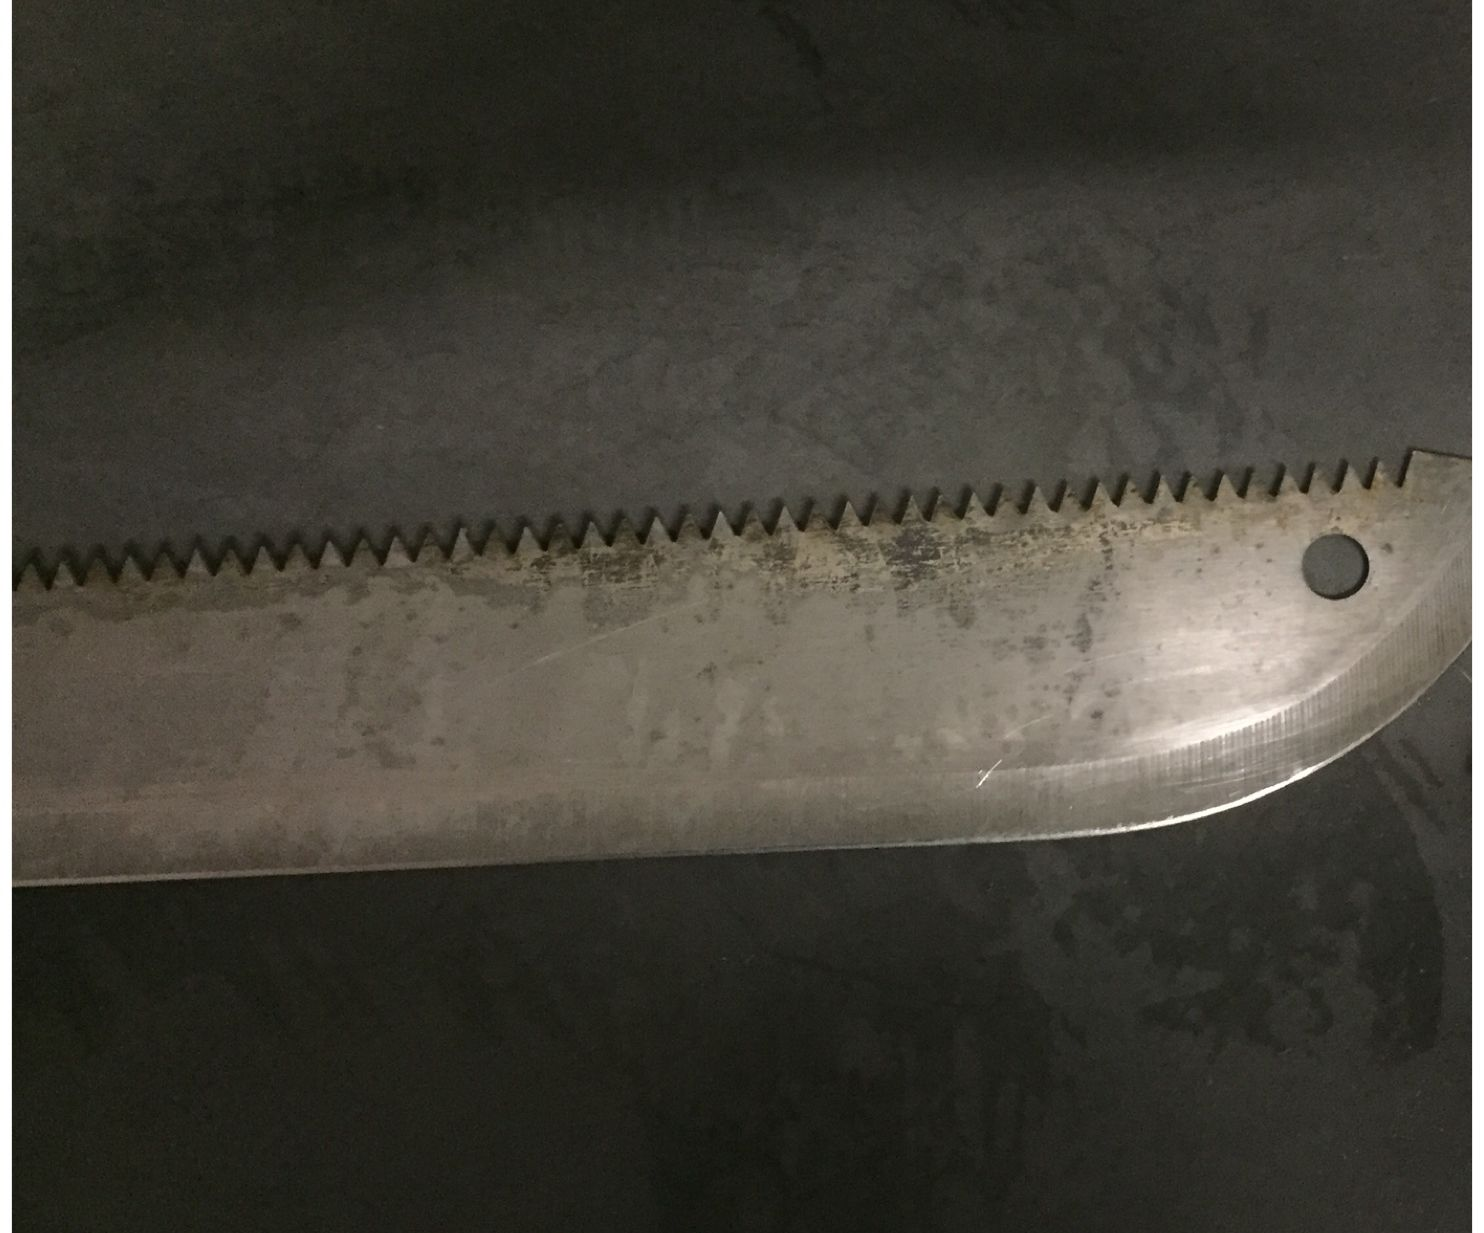 How to Clean Rust Off a Knife